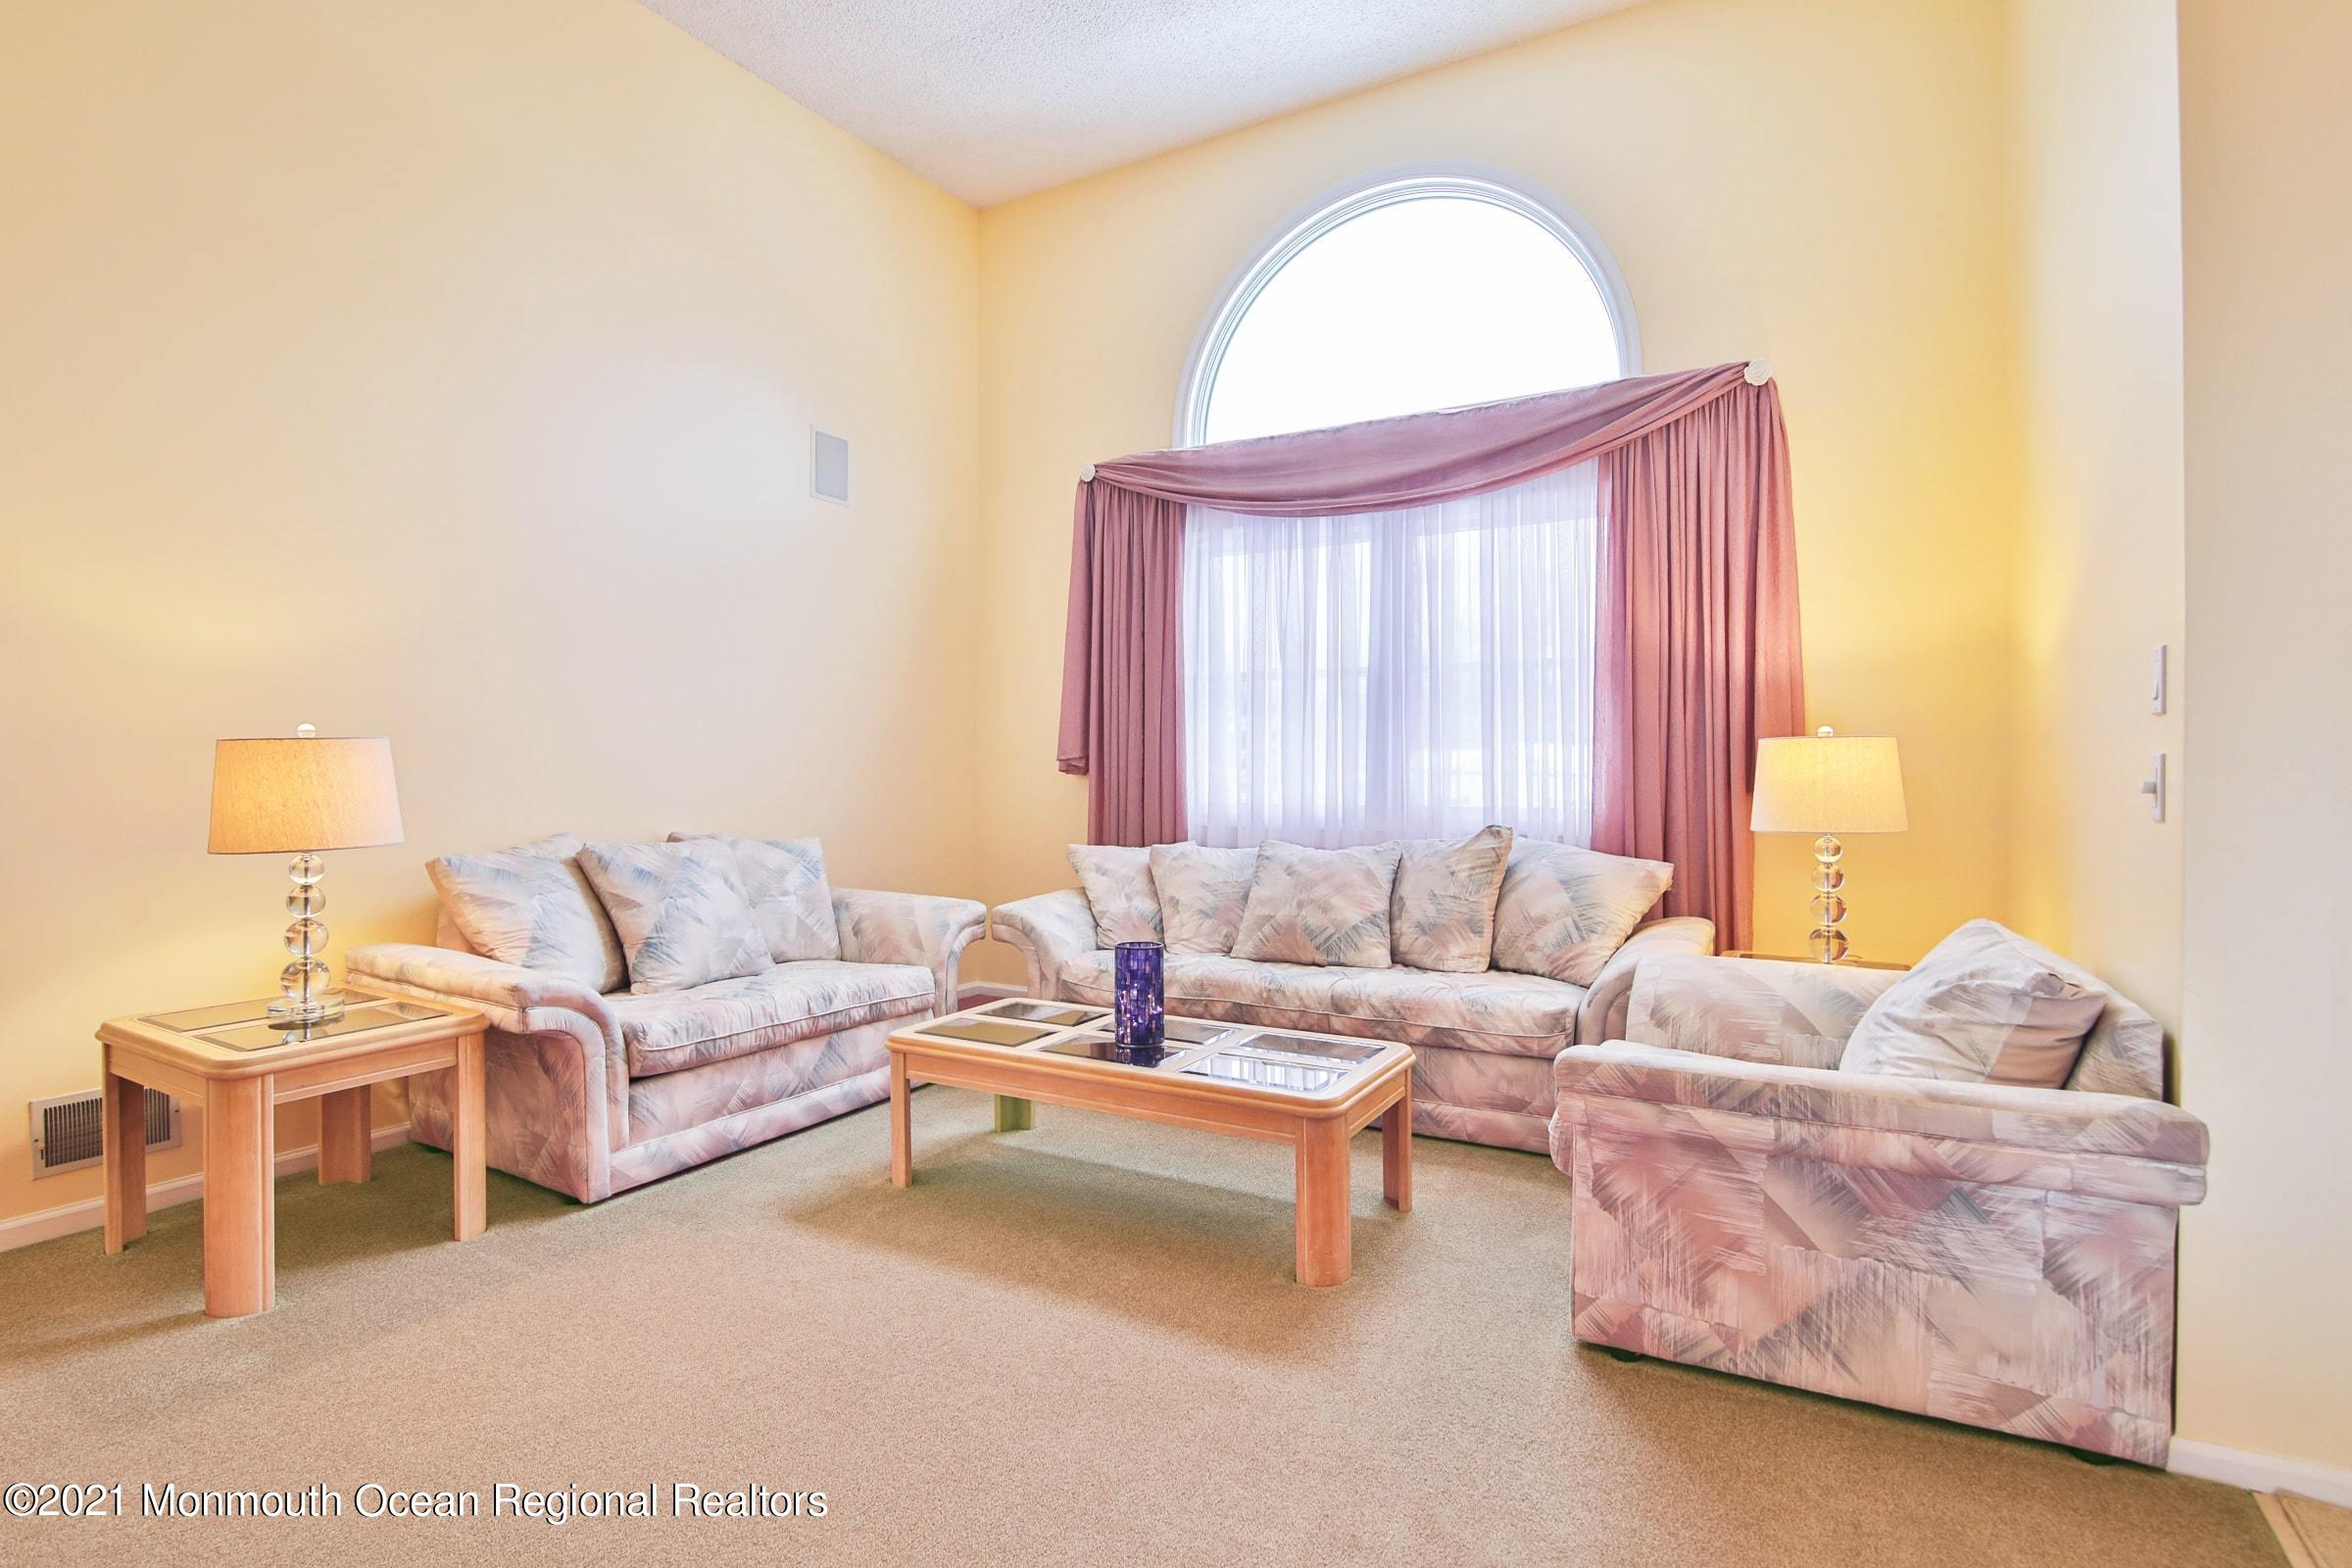 979 Canton Drive, Toms River, New Jersey 08753, 3 Bedrooms Bedrooms, ,3 BathroomsBathrooms,Single Family,For Sale,979 Canton Drive,3,22104349